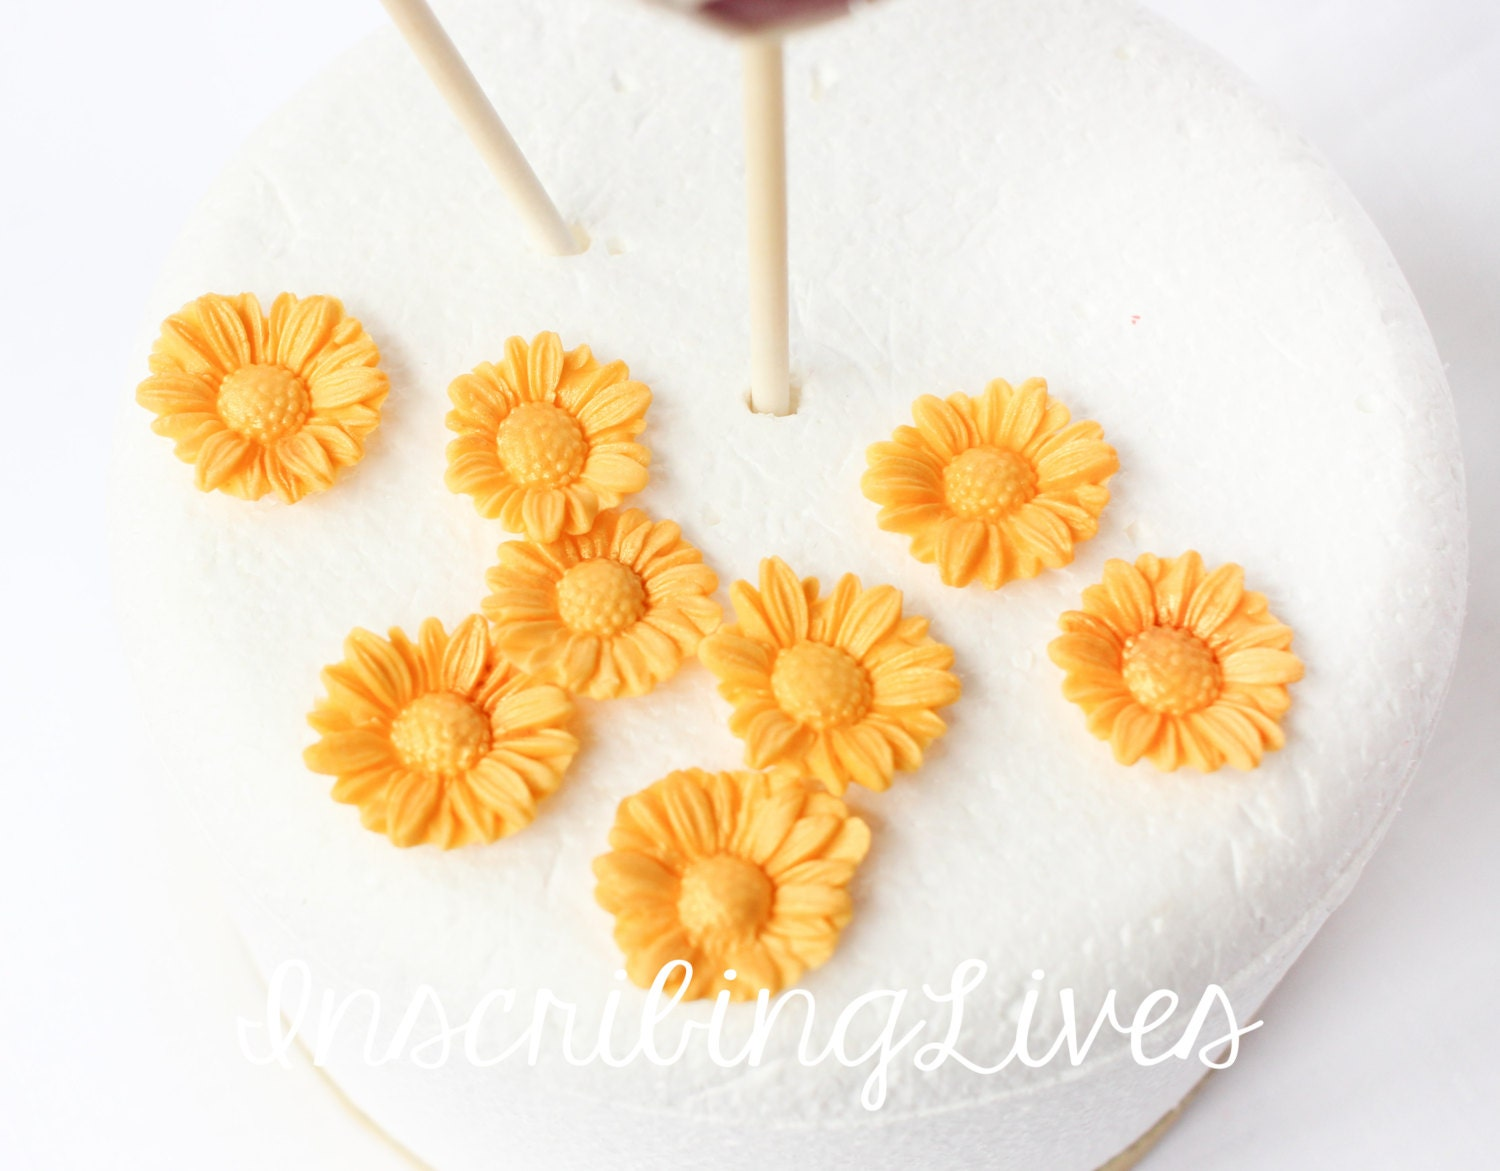 36 Small Gold Daisy Fondant Flowers Cake Pop Toppers Decorations